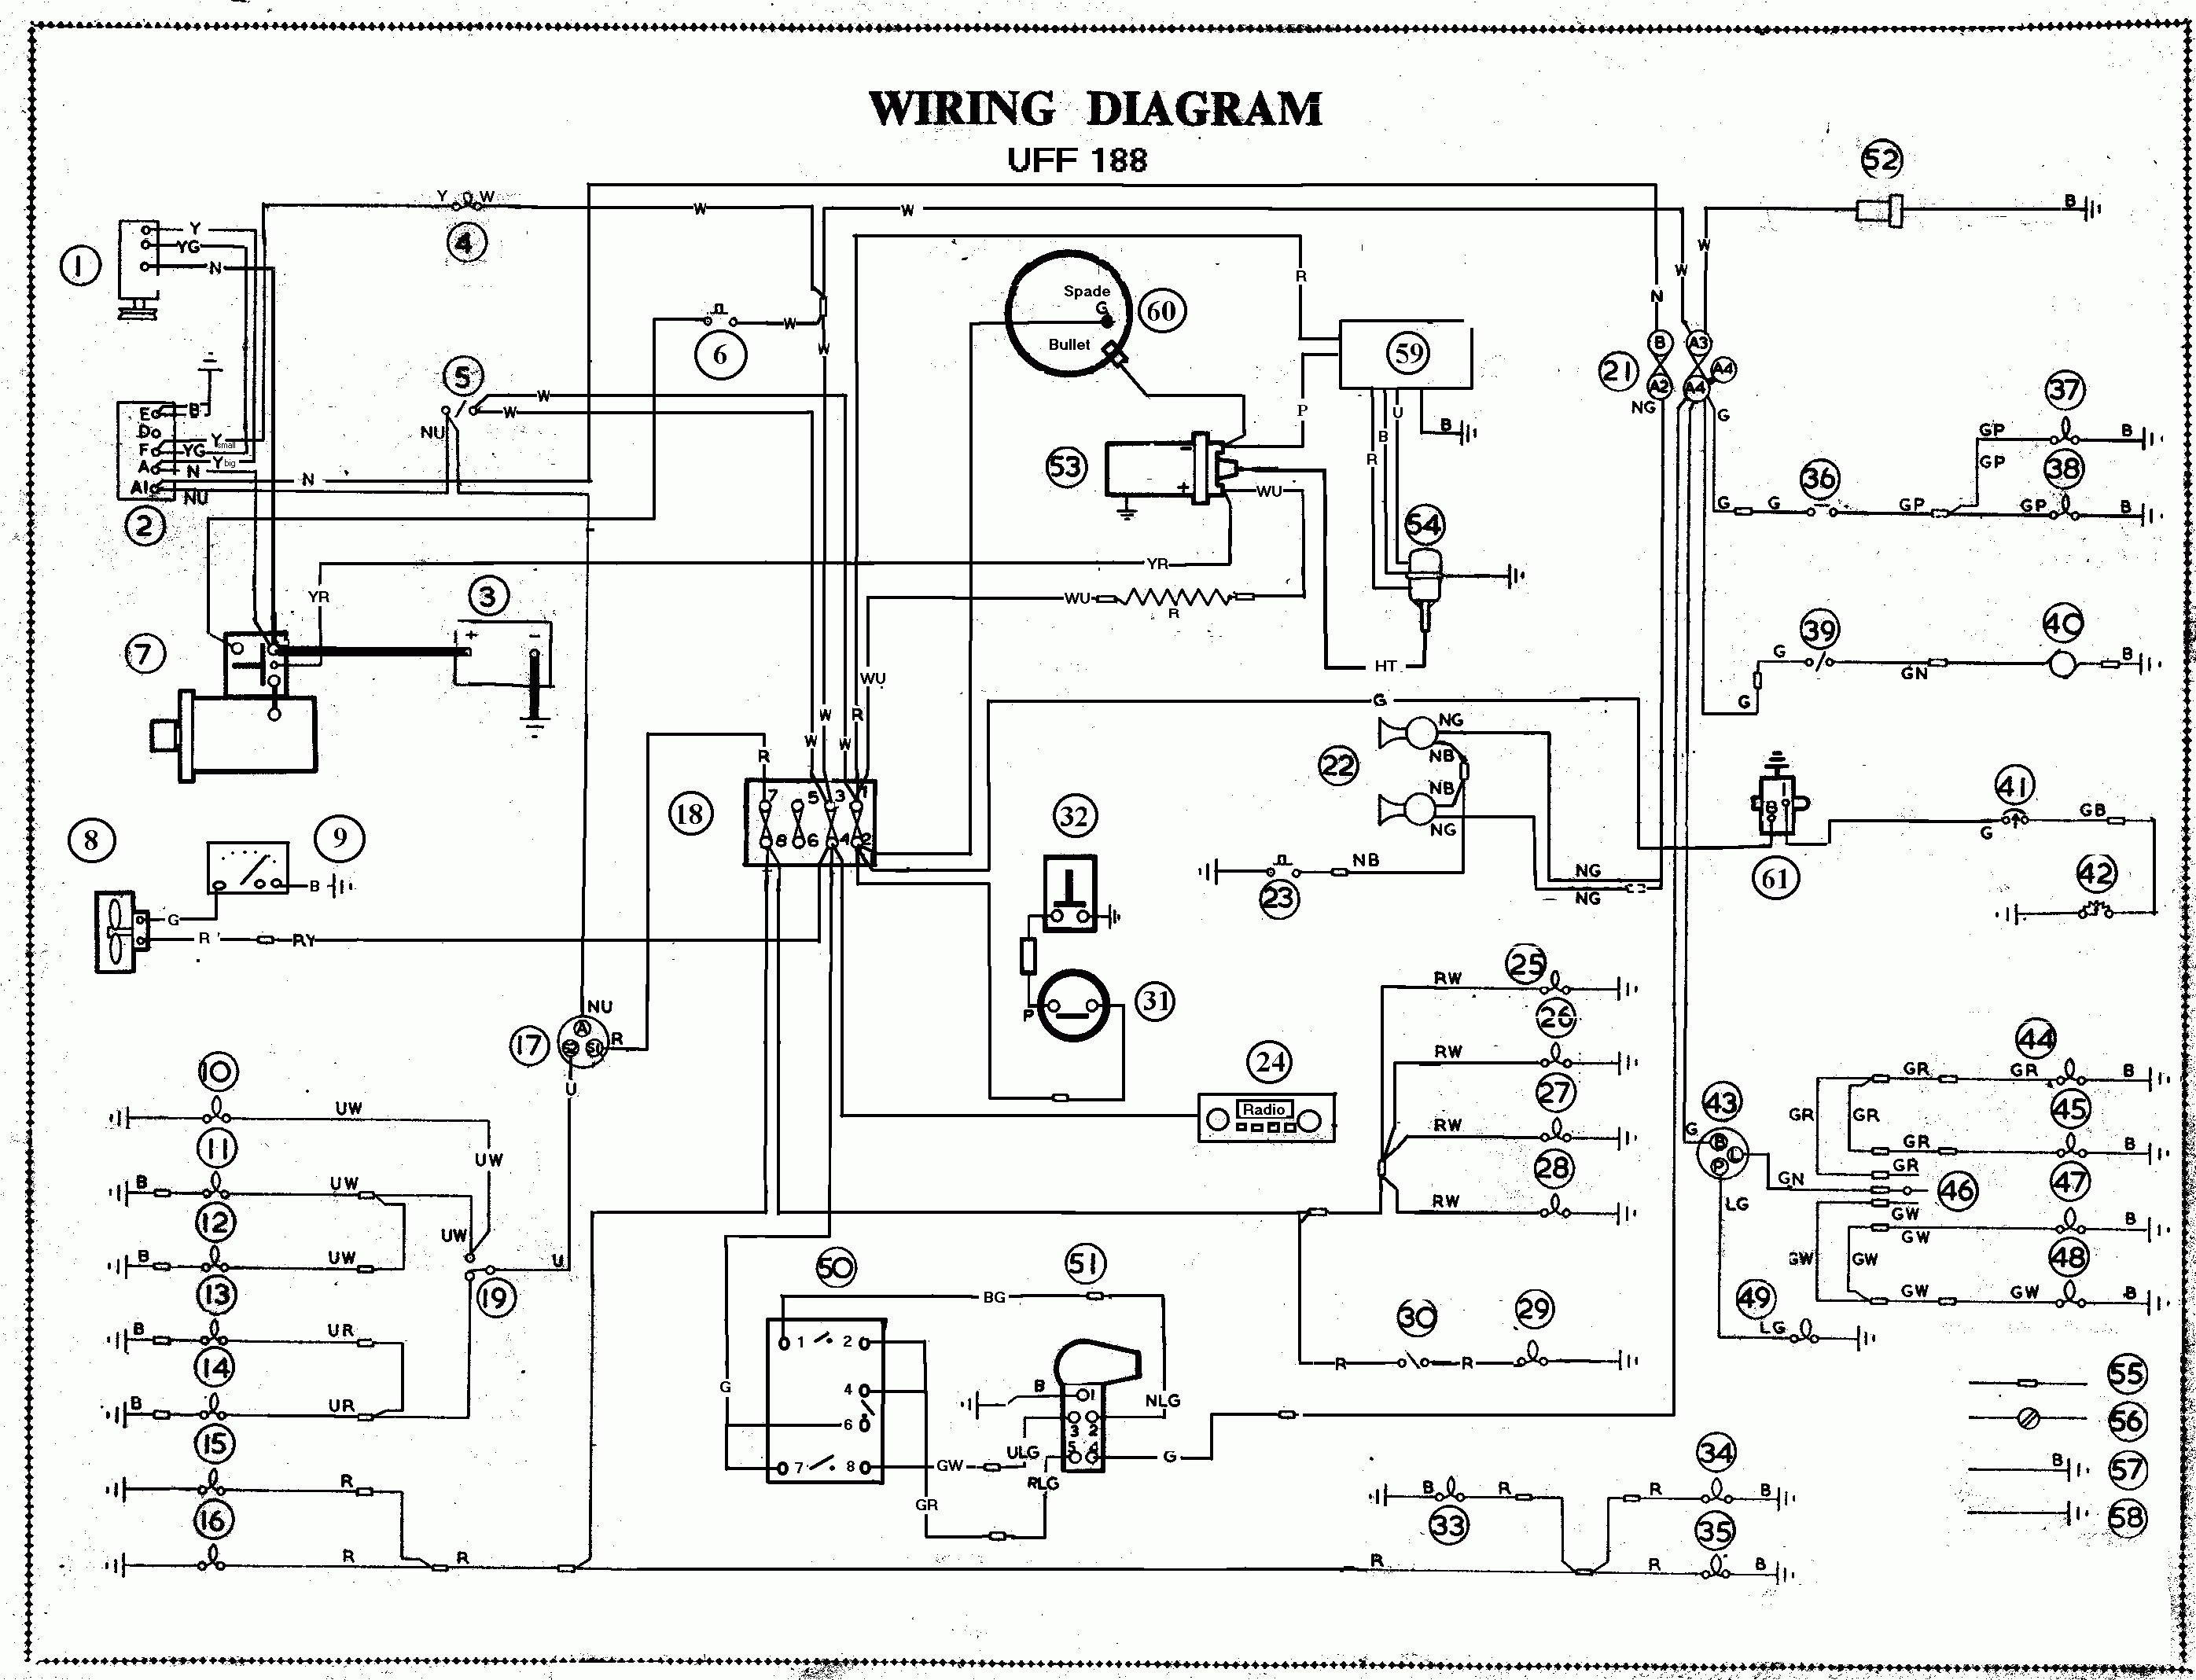 Motorcycle Wiring Diagram Download | Wiring Diagram - Motorcycle Ignition Switch Wiring Diagram